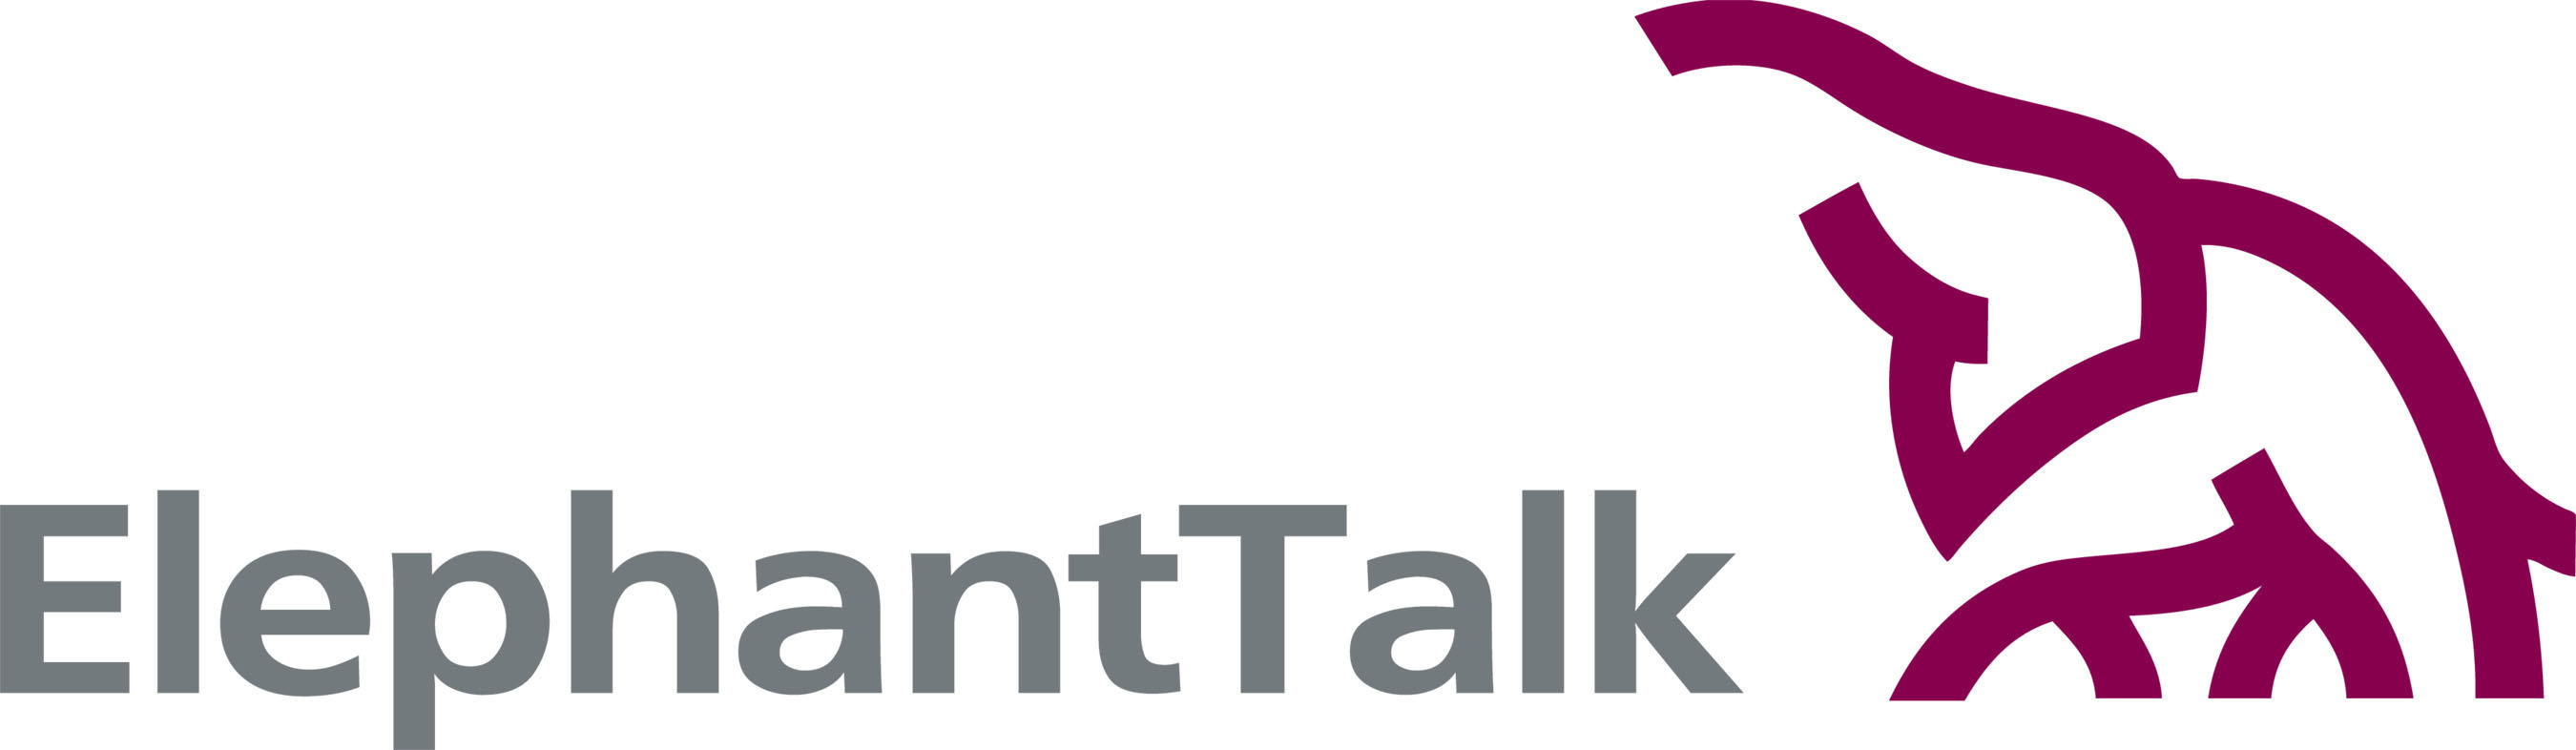 Elephant Talk Reports 2015 Second Quarter Financial Results